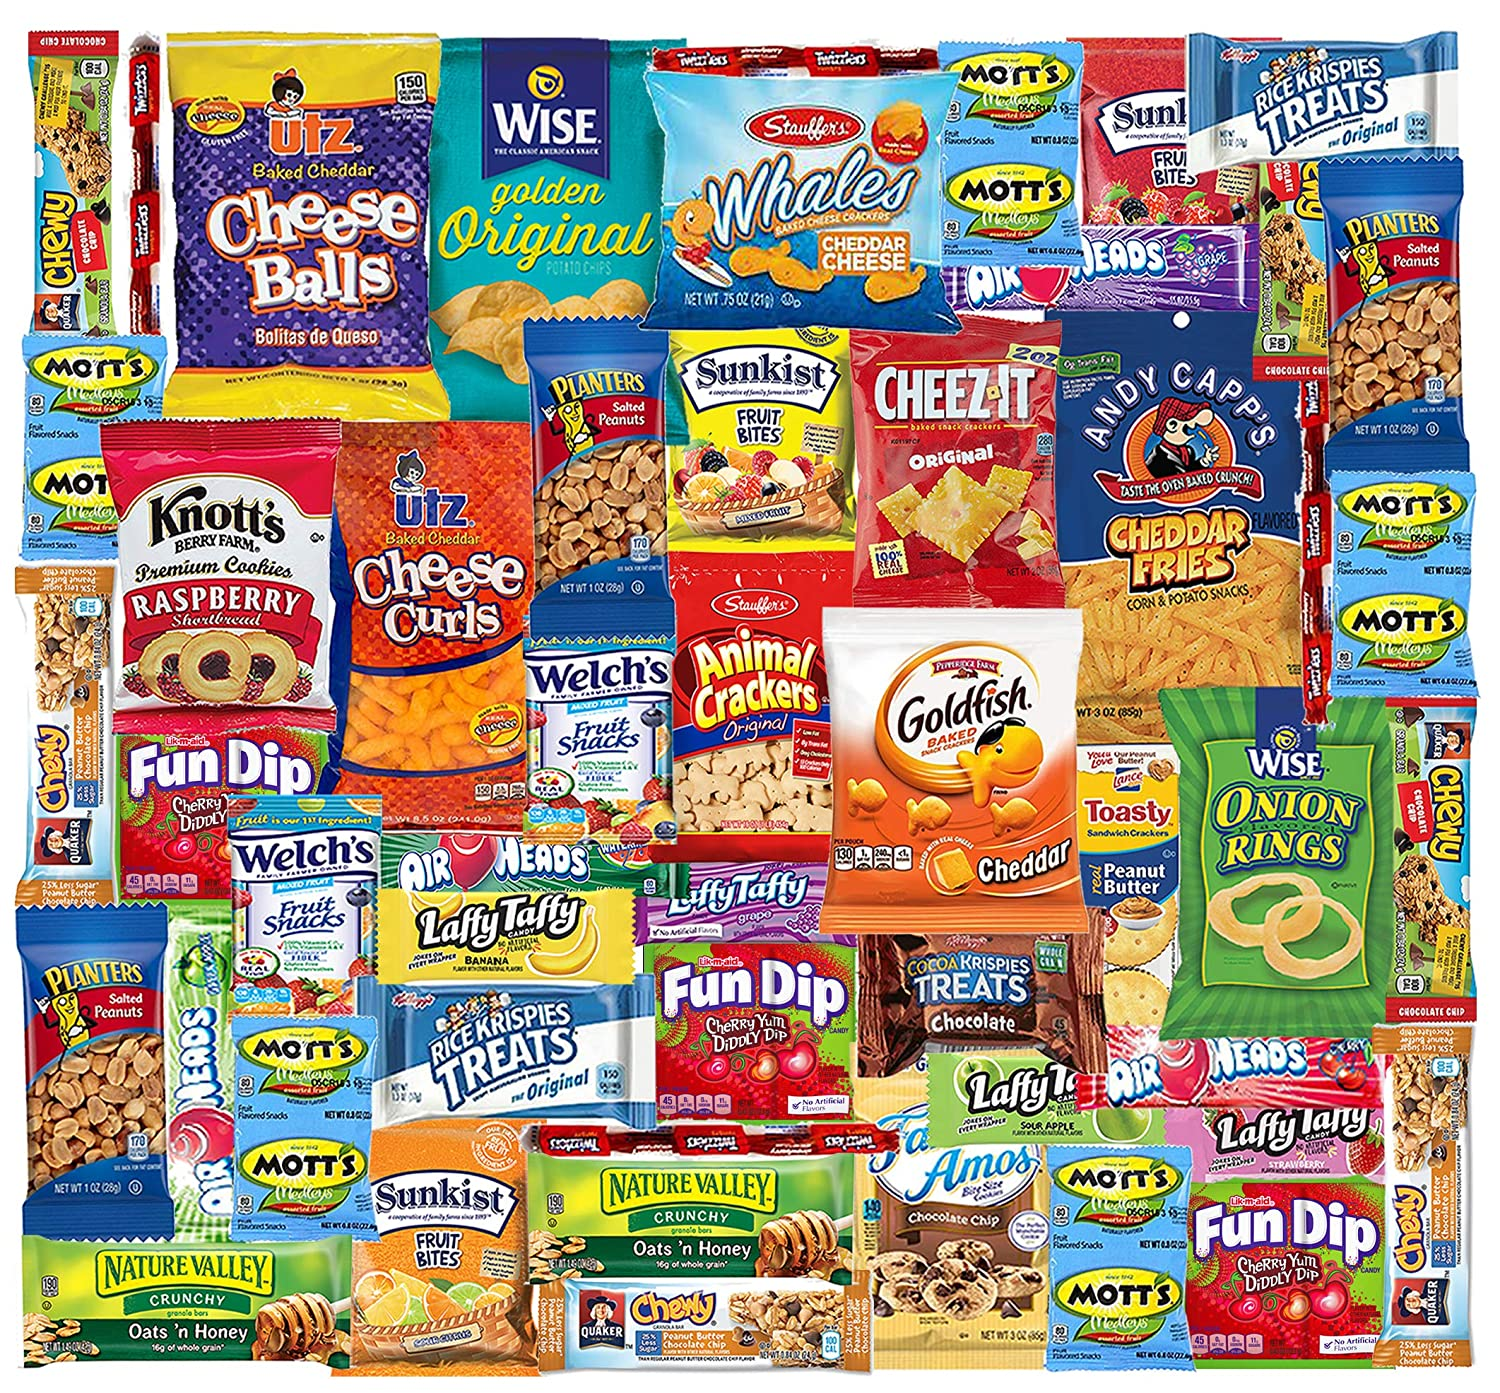 Snacks Box (48 Count) Ultimate Sampler Mixed Box, Cookies Chips Candy Care Package for Office Meetings Schools Friends & Family Military College, Christmas Gifts Baskets, Snack Variety Pack